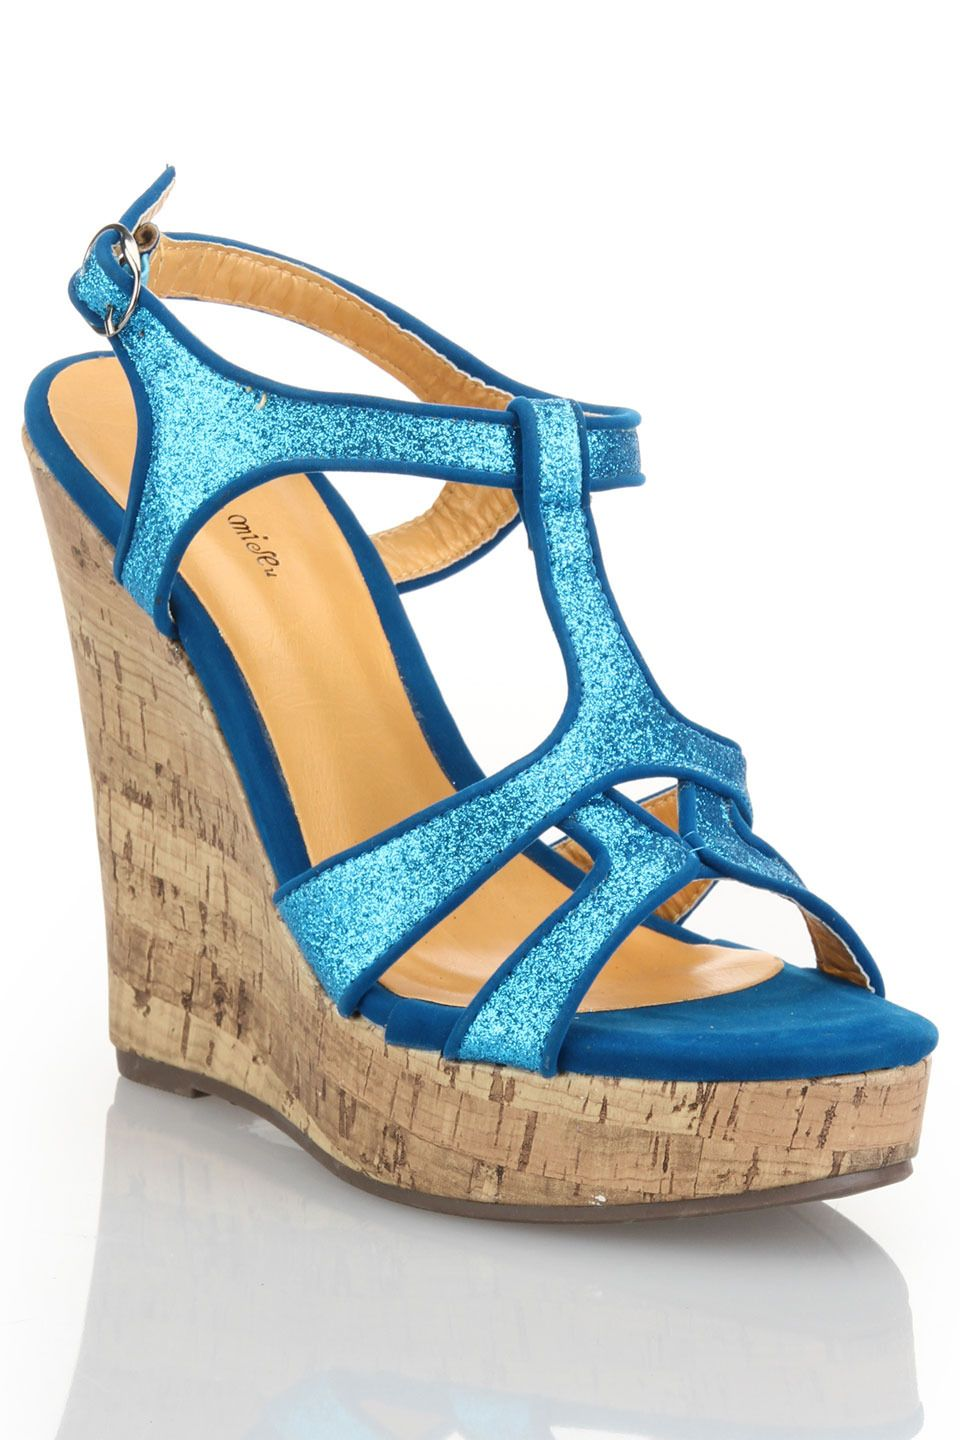 Shoe Republic Rockit T-Strap Glitter Wedge in Teal - Beyond the Rack $14.99